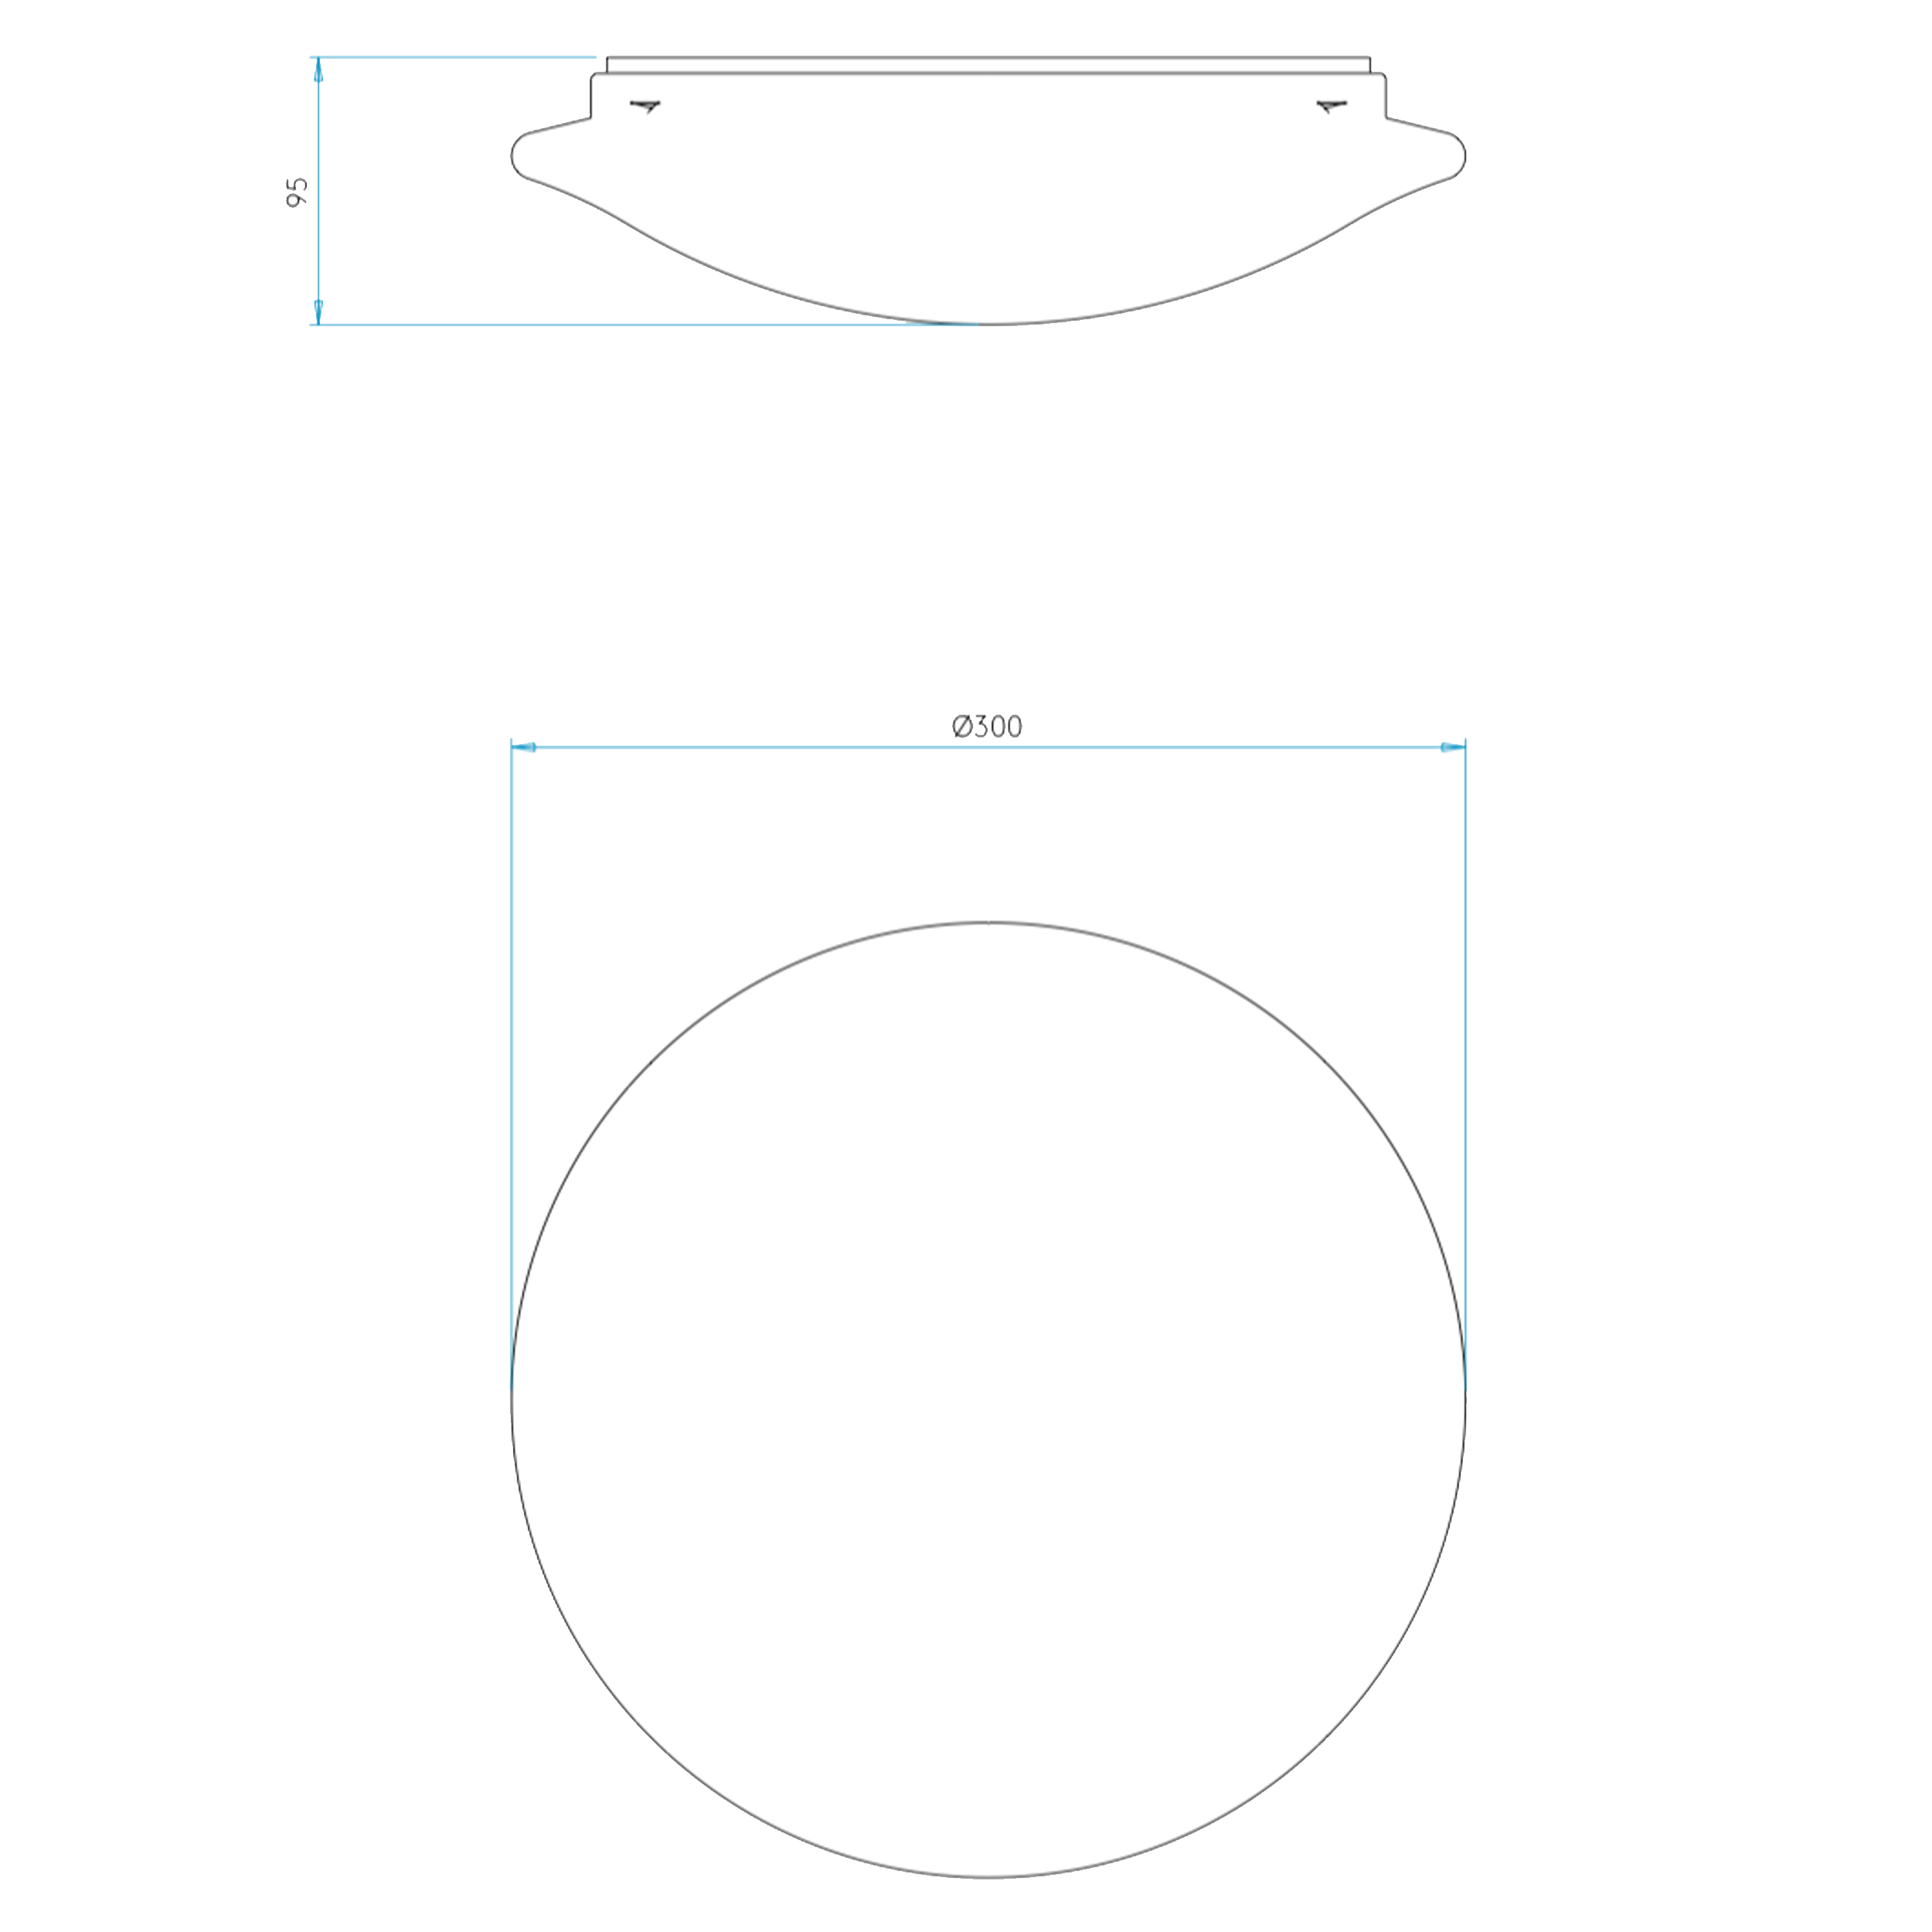 Astro Massa 300 Led Ceiling Light Line Drawing